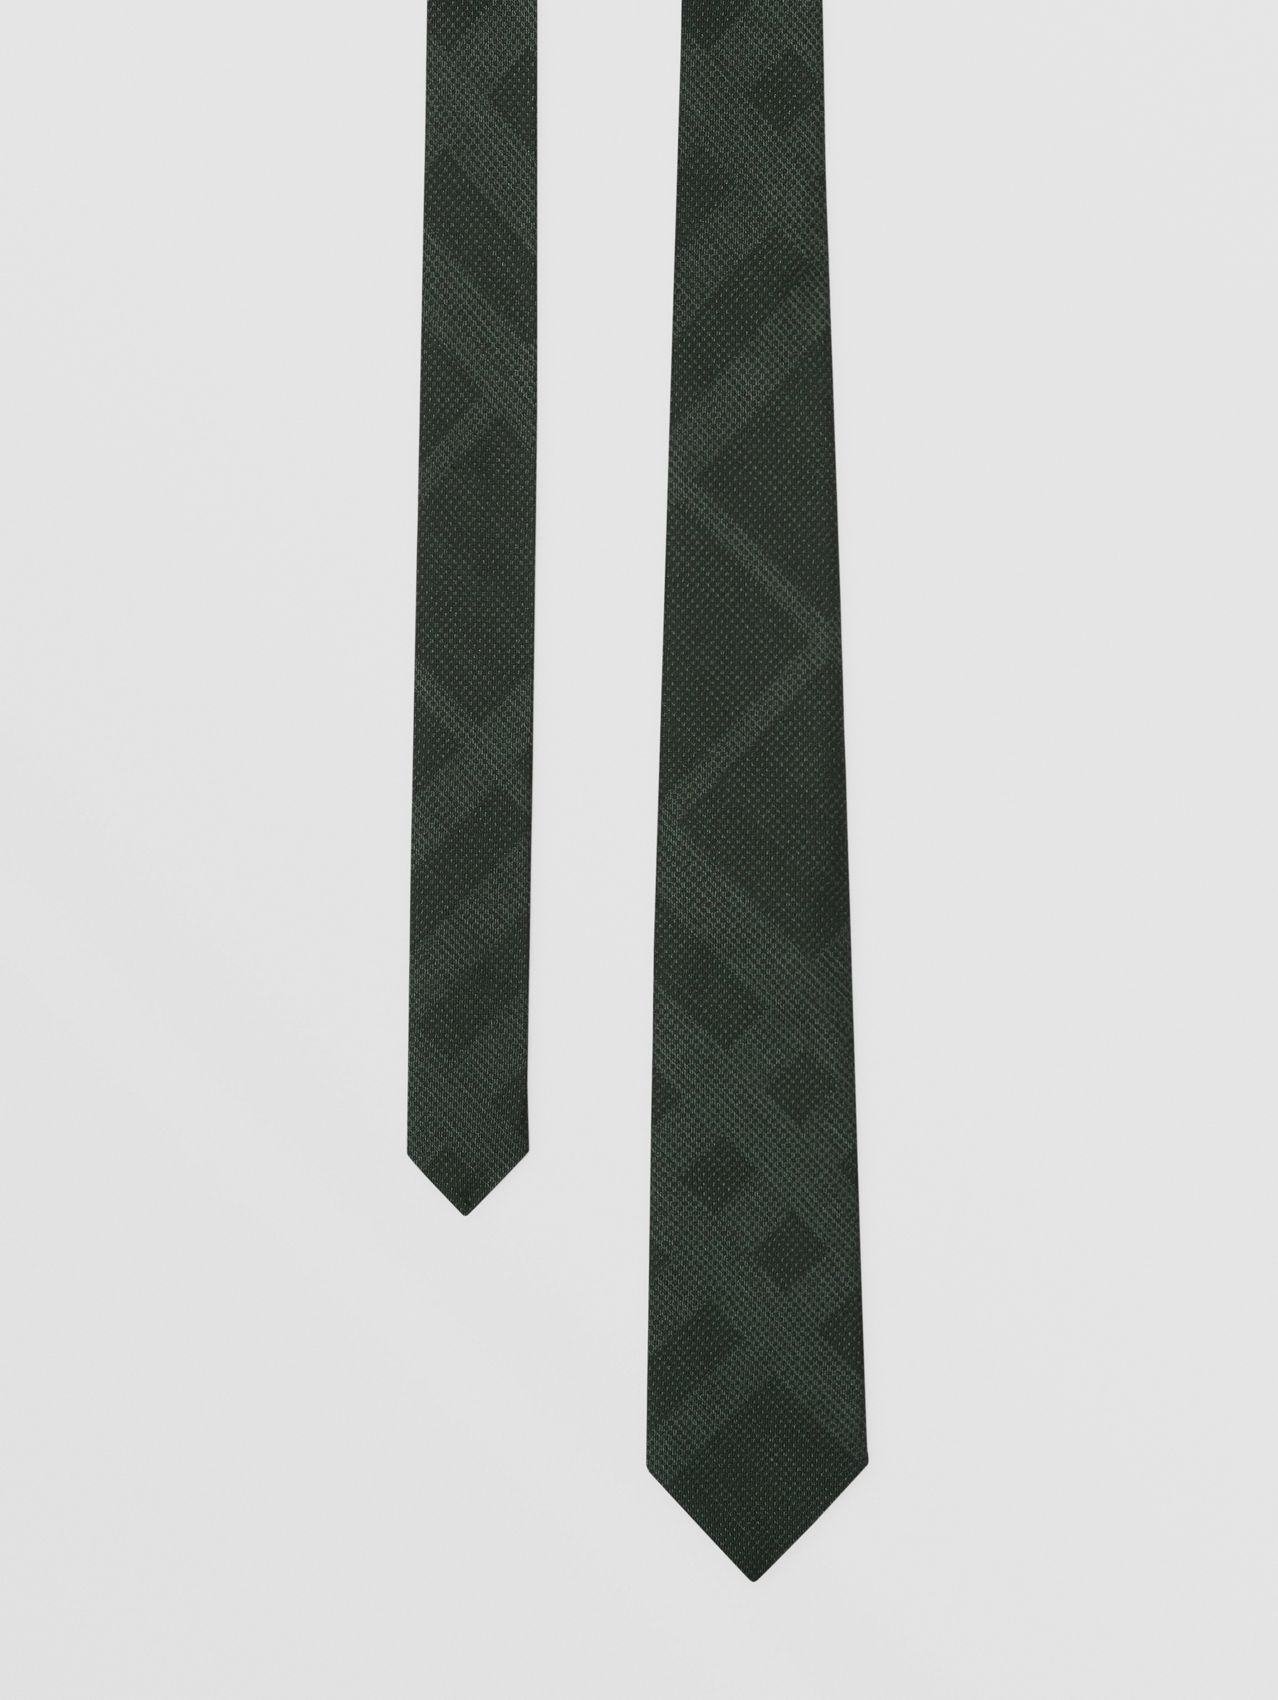 Classic Cut Check Silk Tie in Dark Forest Green